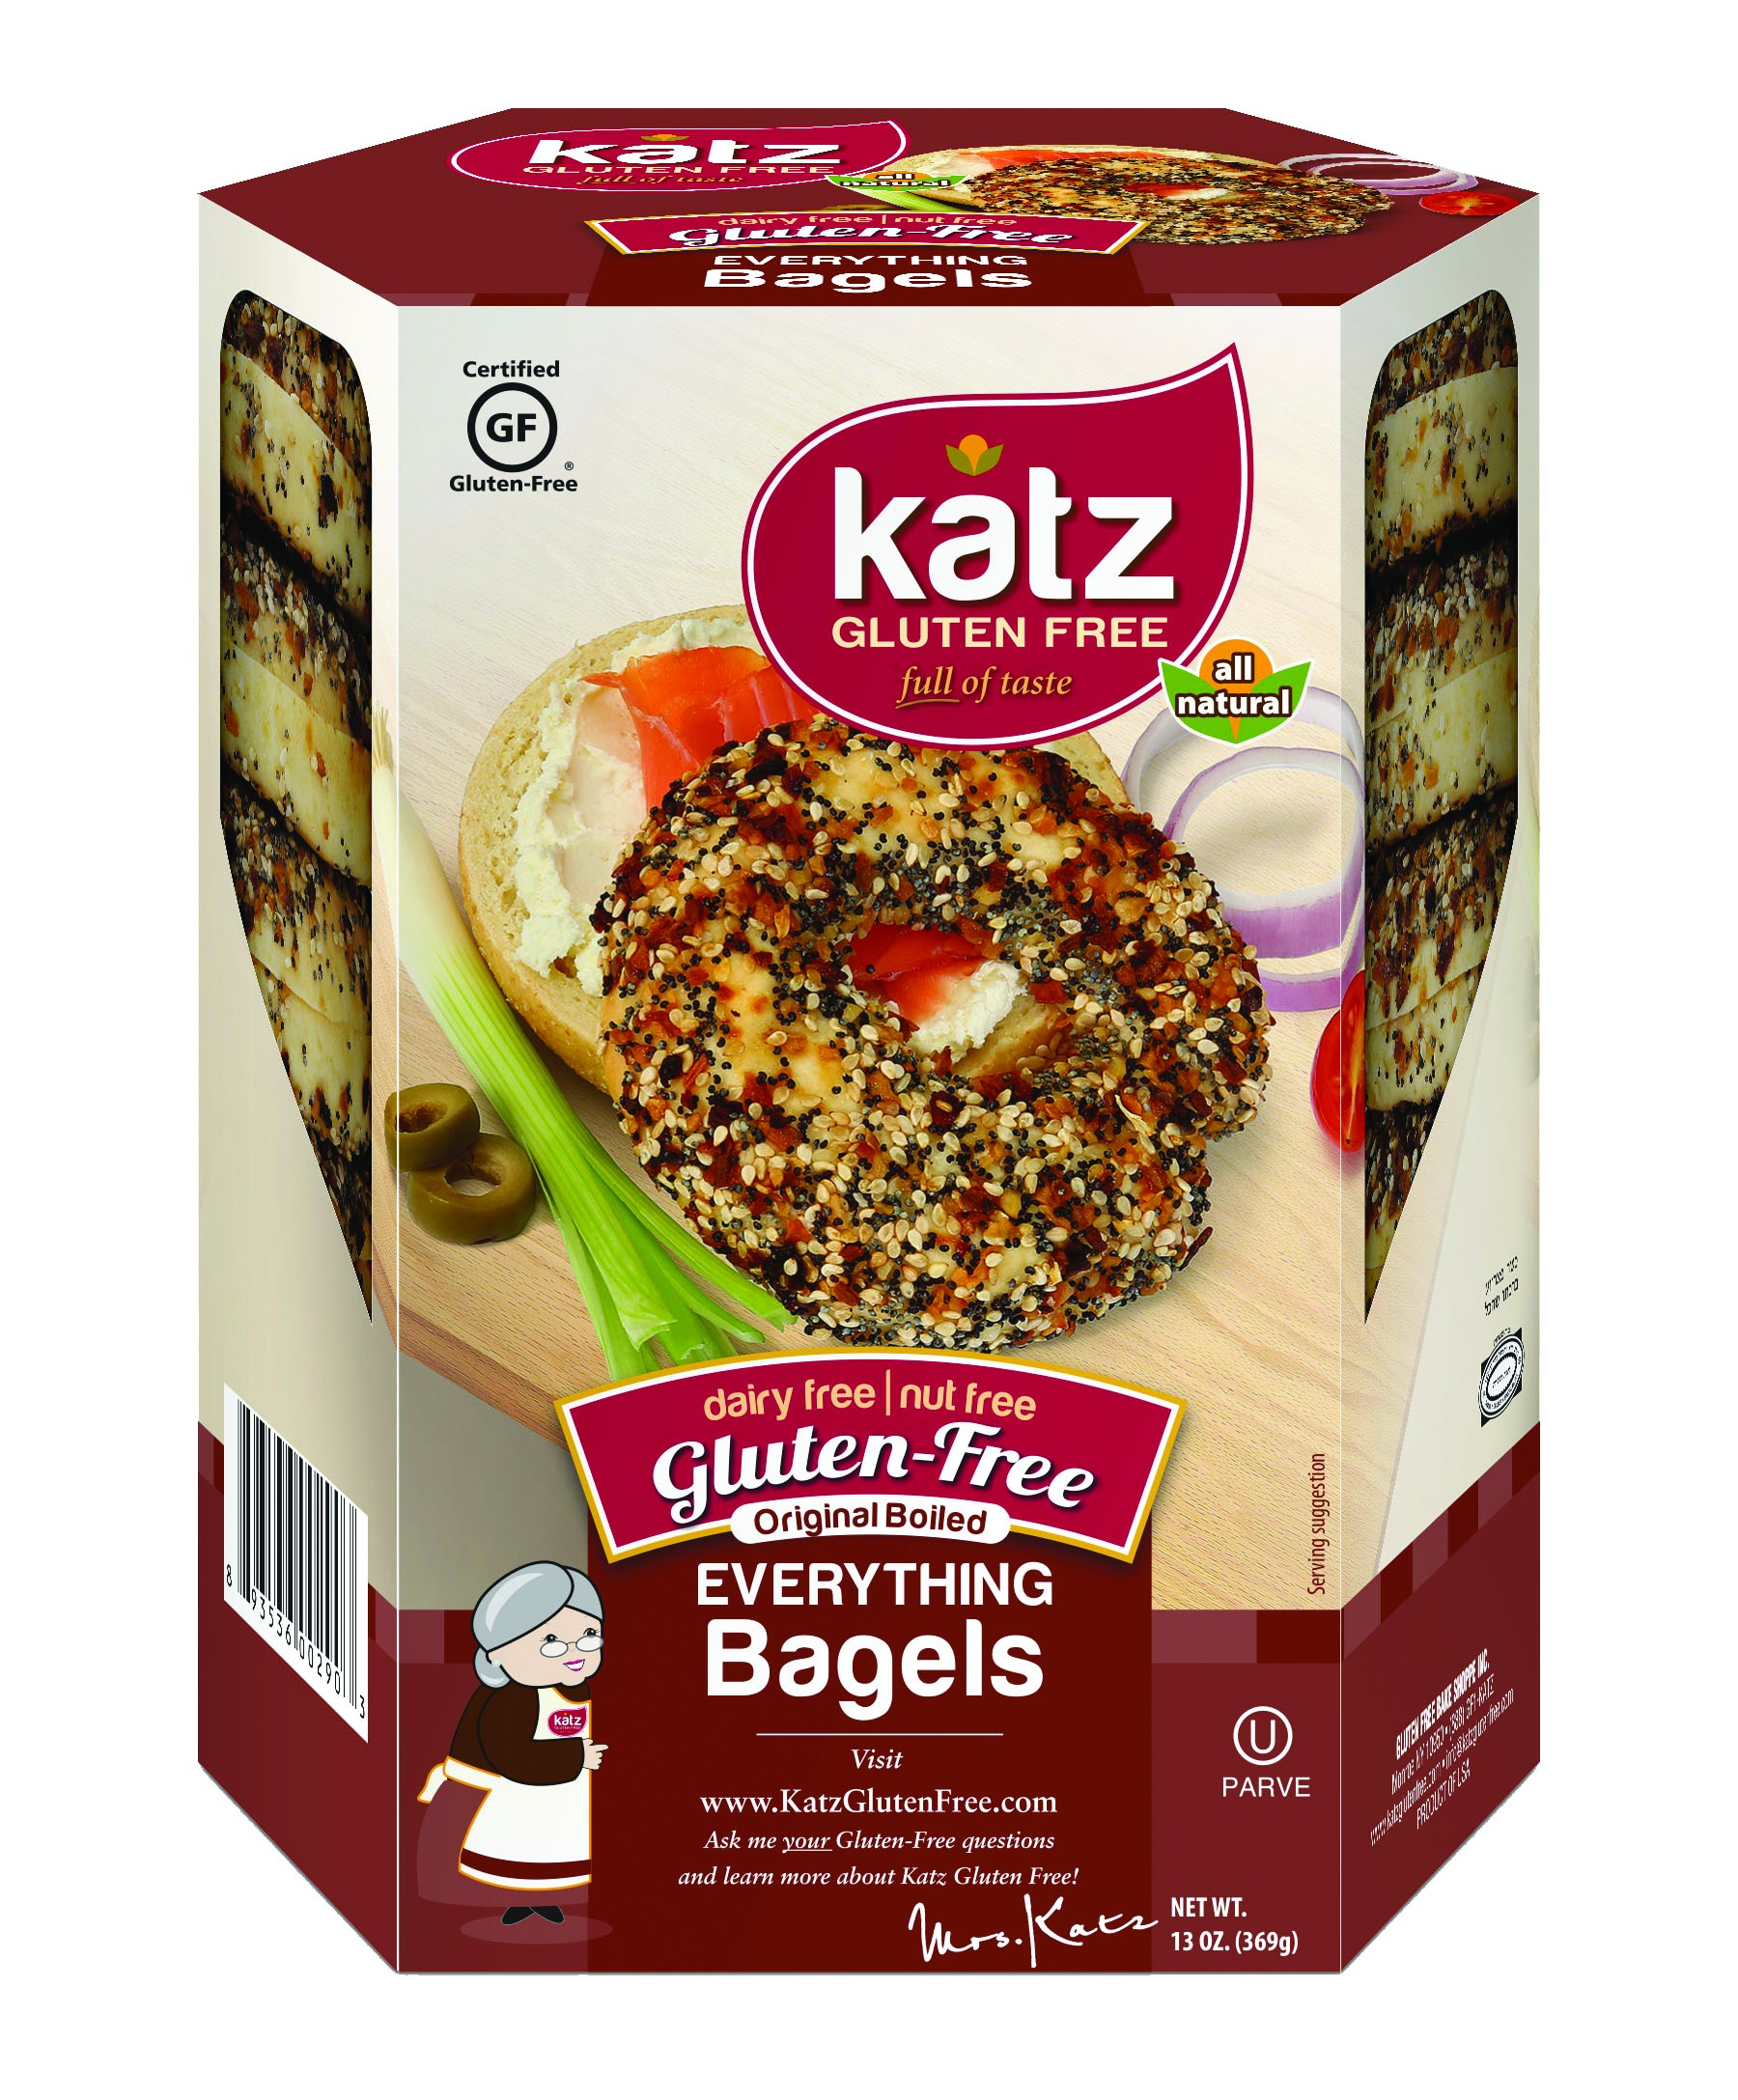 Katz Gluten Free Everything Bagels, 14 Oz